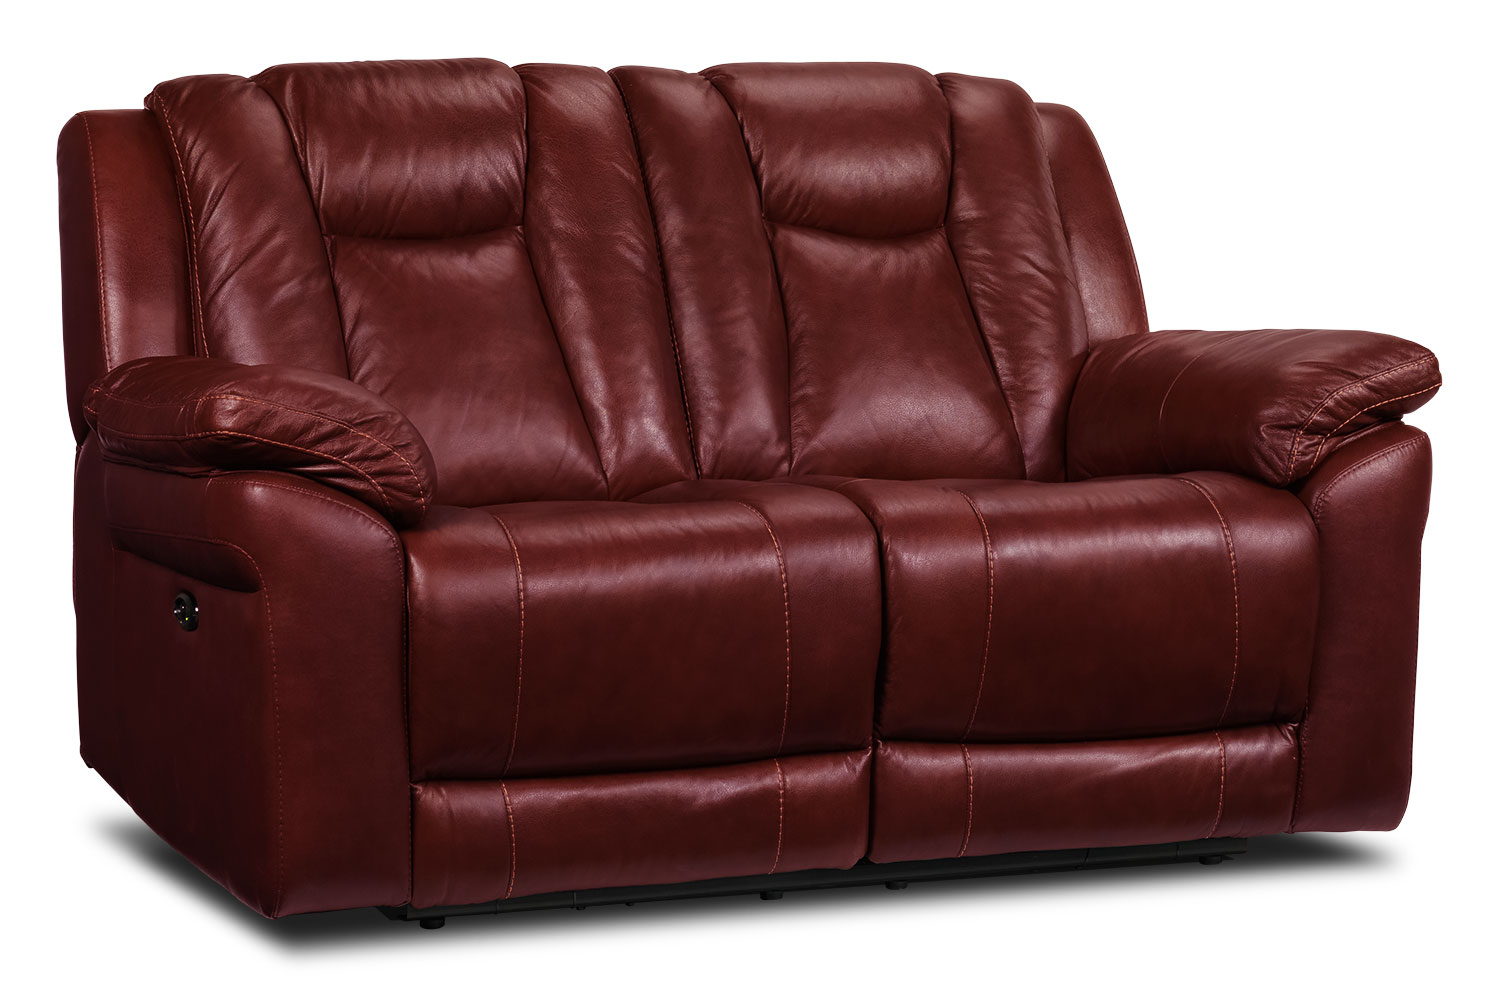 Living Room Furniture - Plato Power Reclining Loveseat - Burgundy